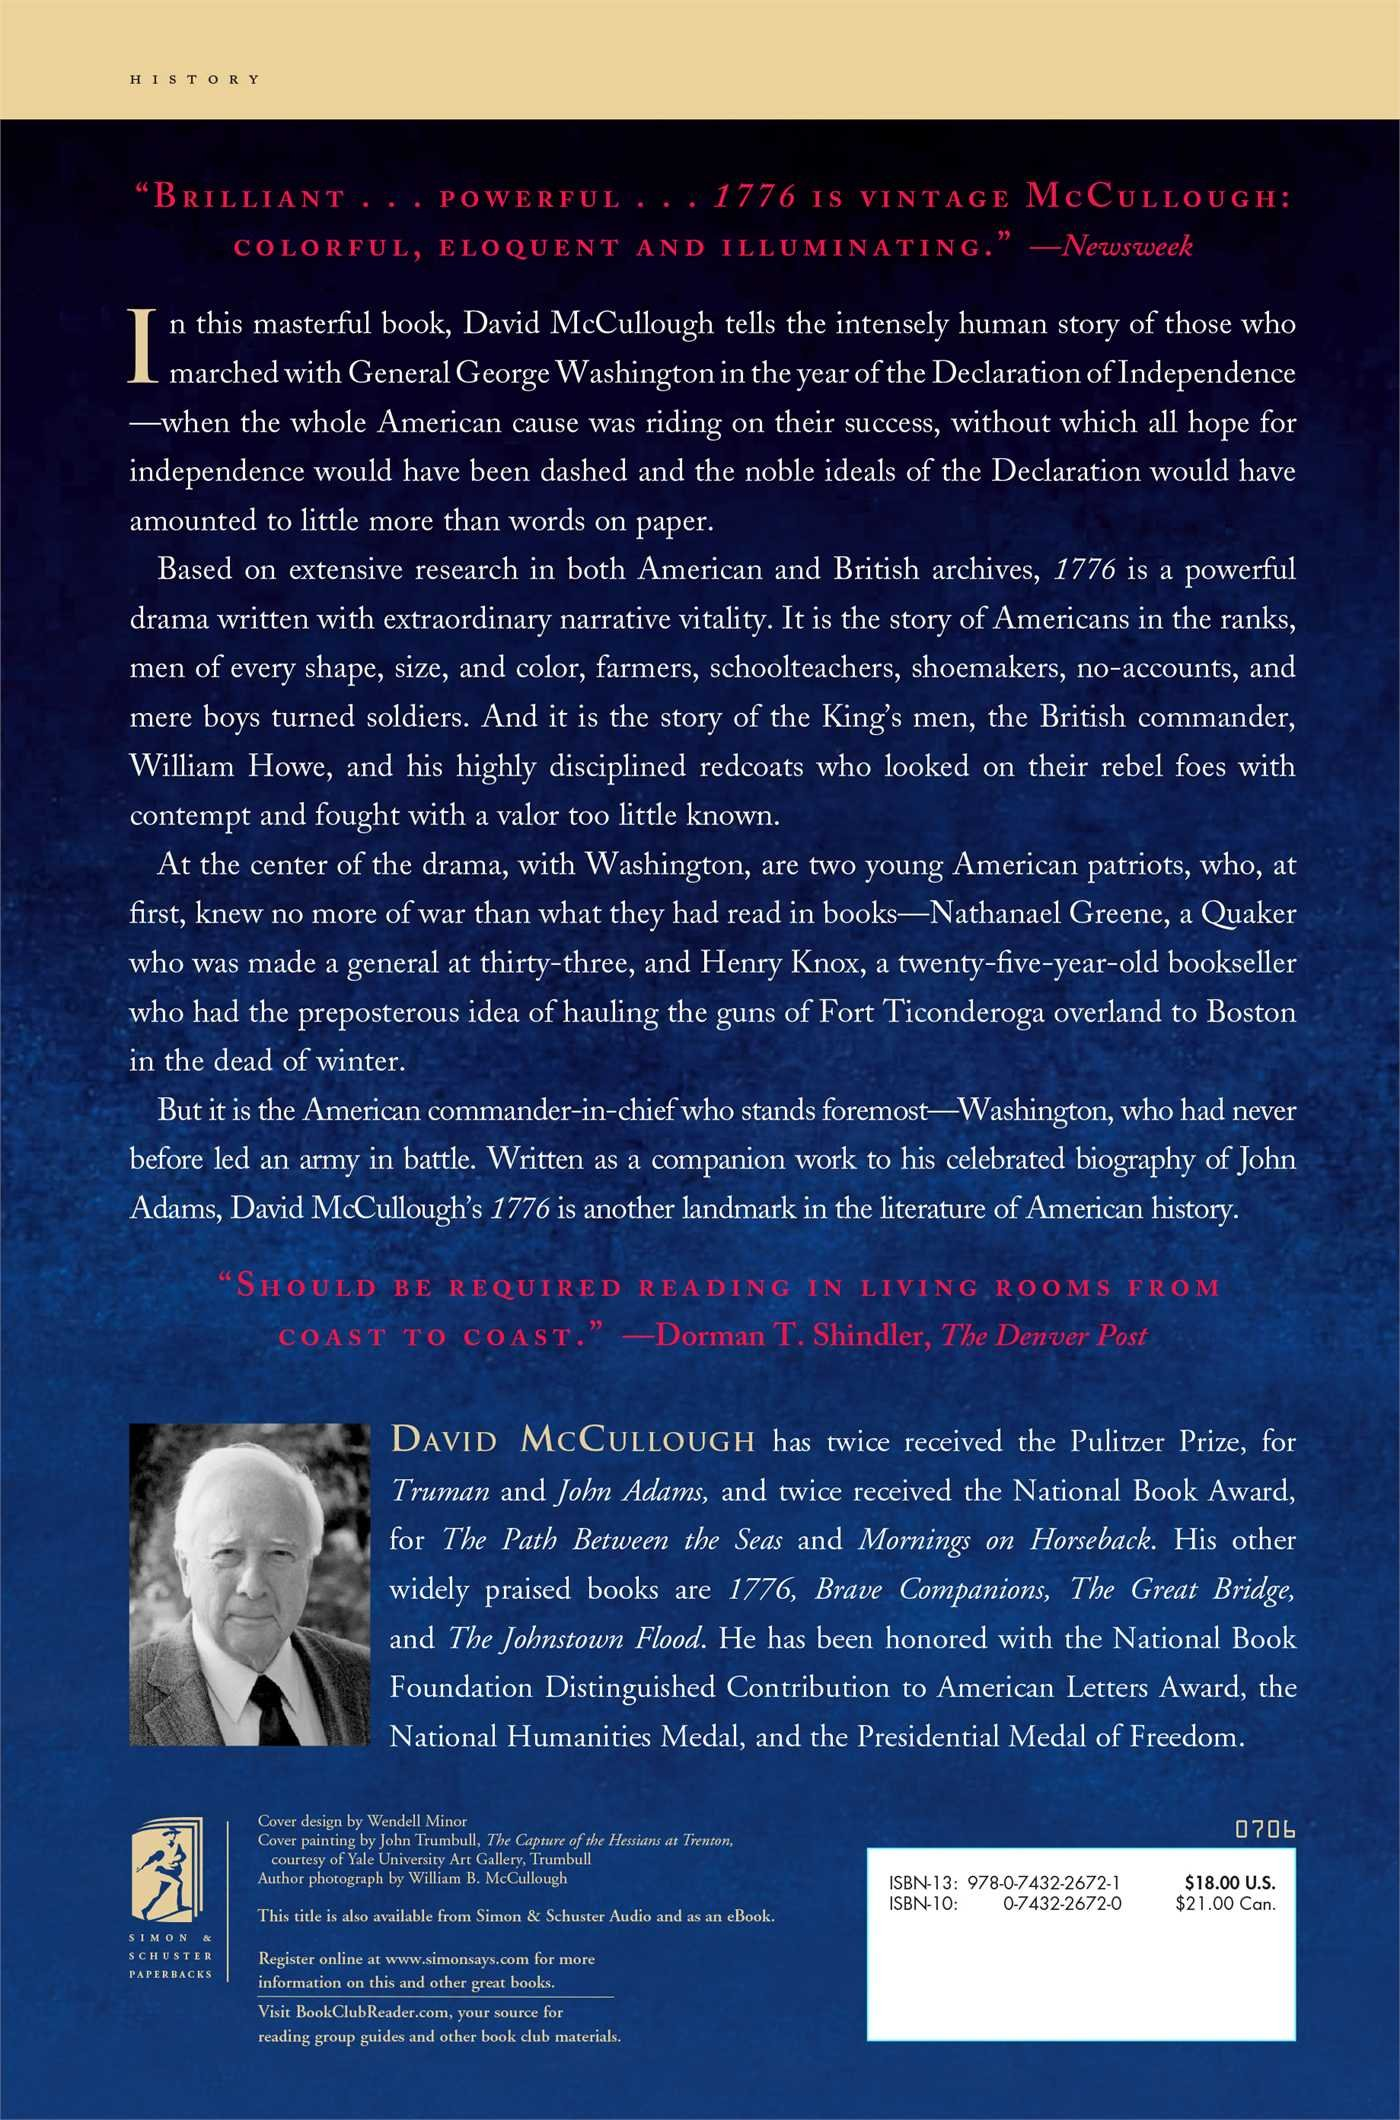 a summary of 1776 by david mccullough David mccullough's 1776 plot summary learn more about 1776 with a detailed plot summary and plot diagram.